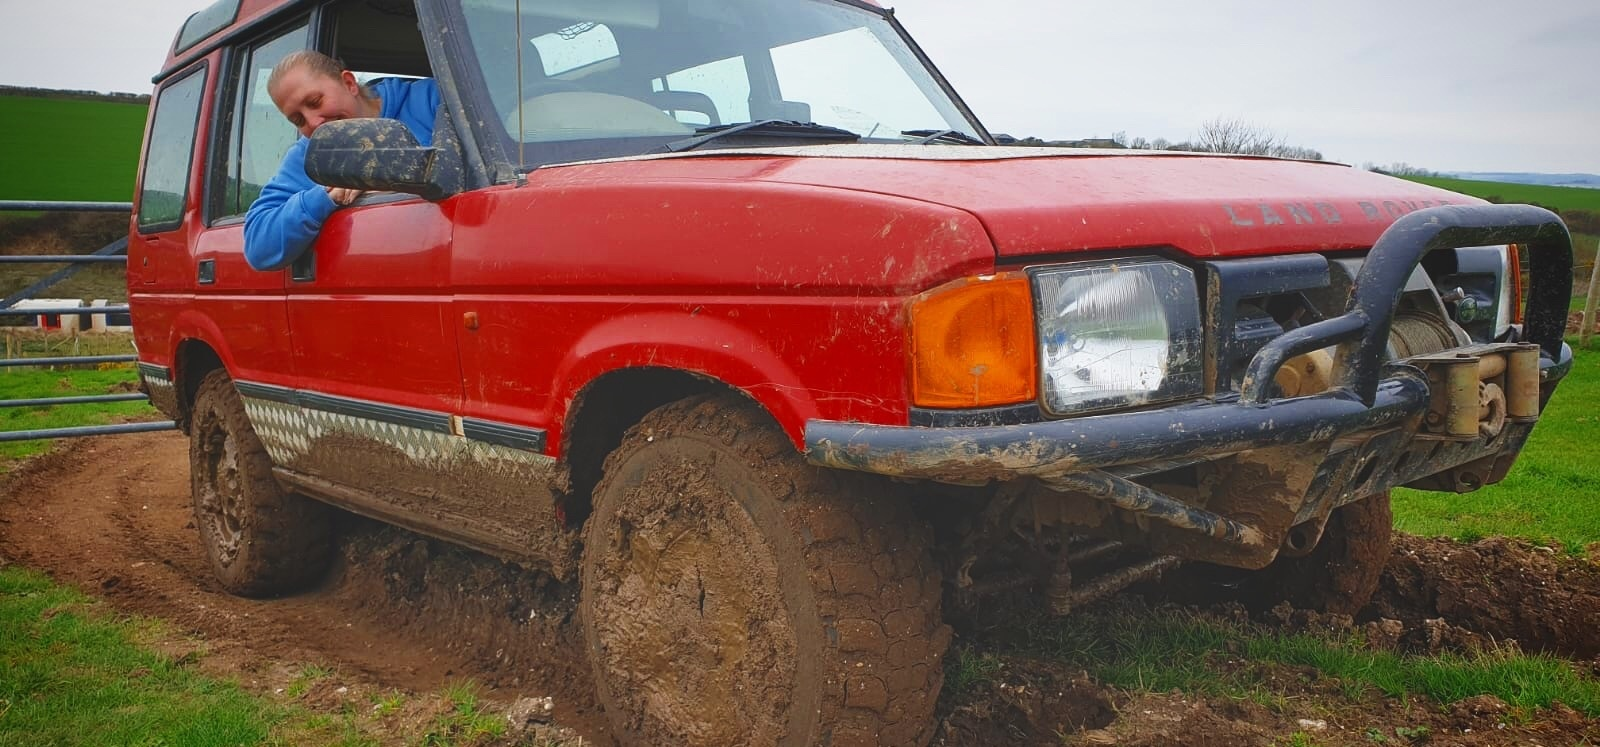 Dorchester 4x4 Adventure Experience - Shared-13